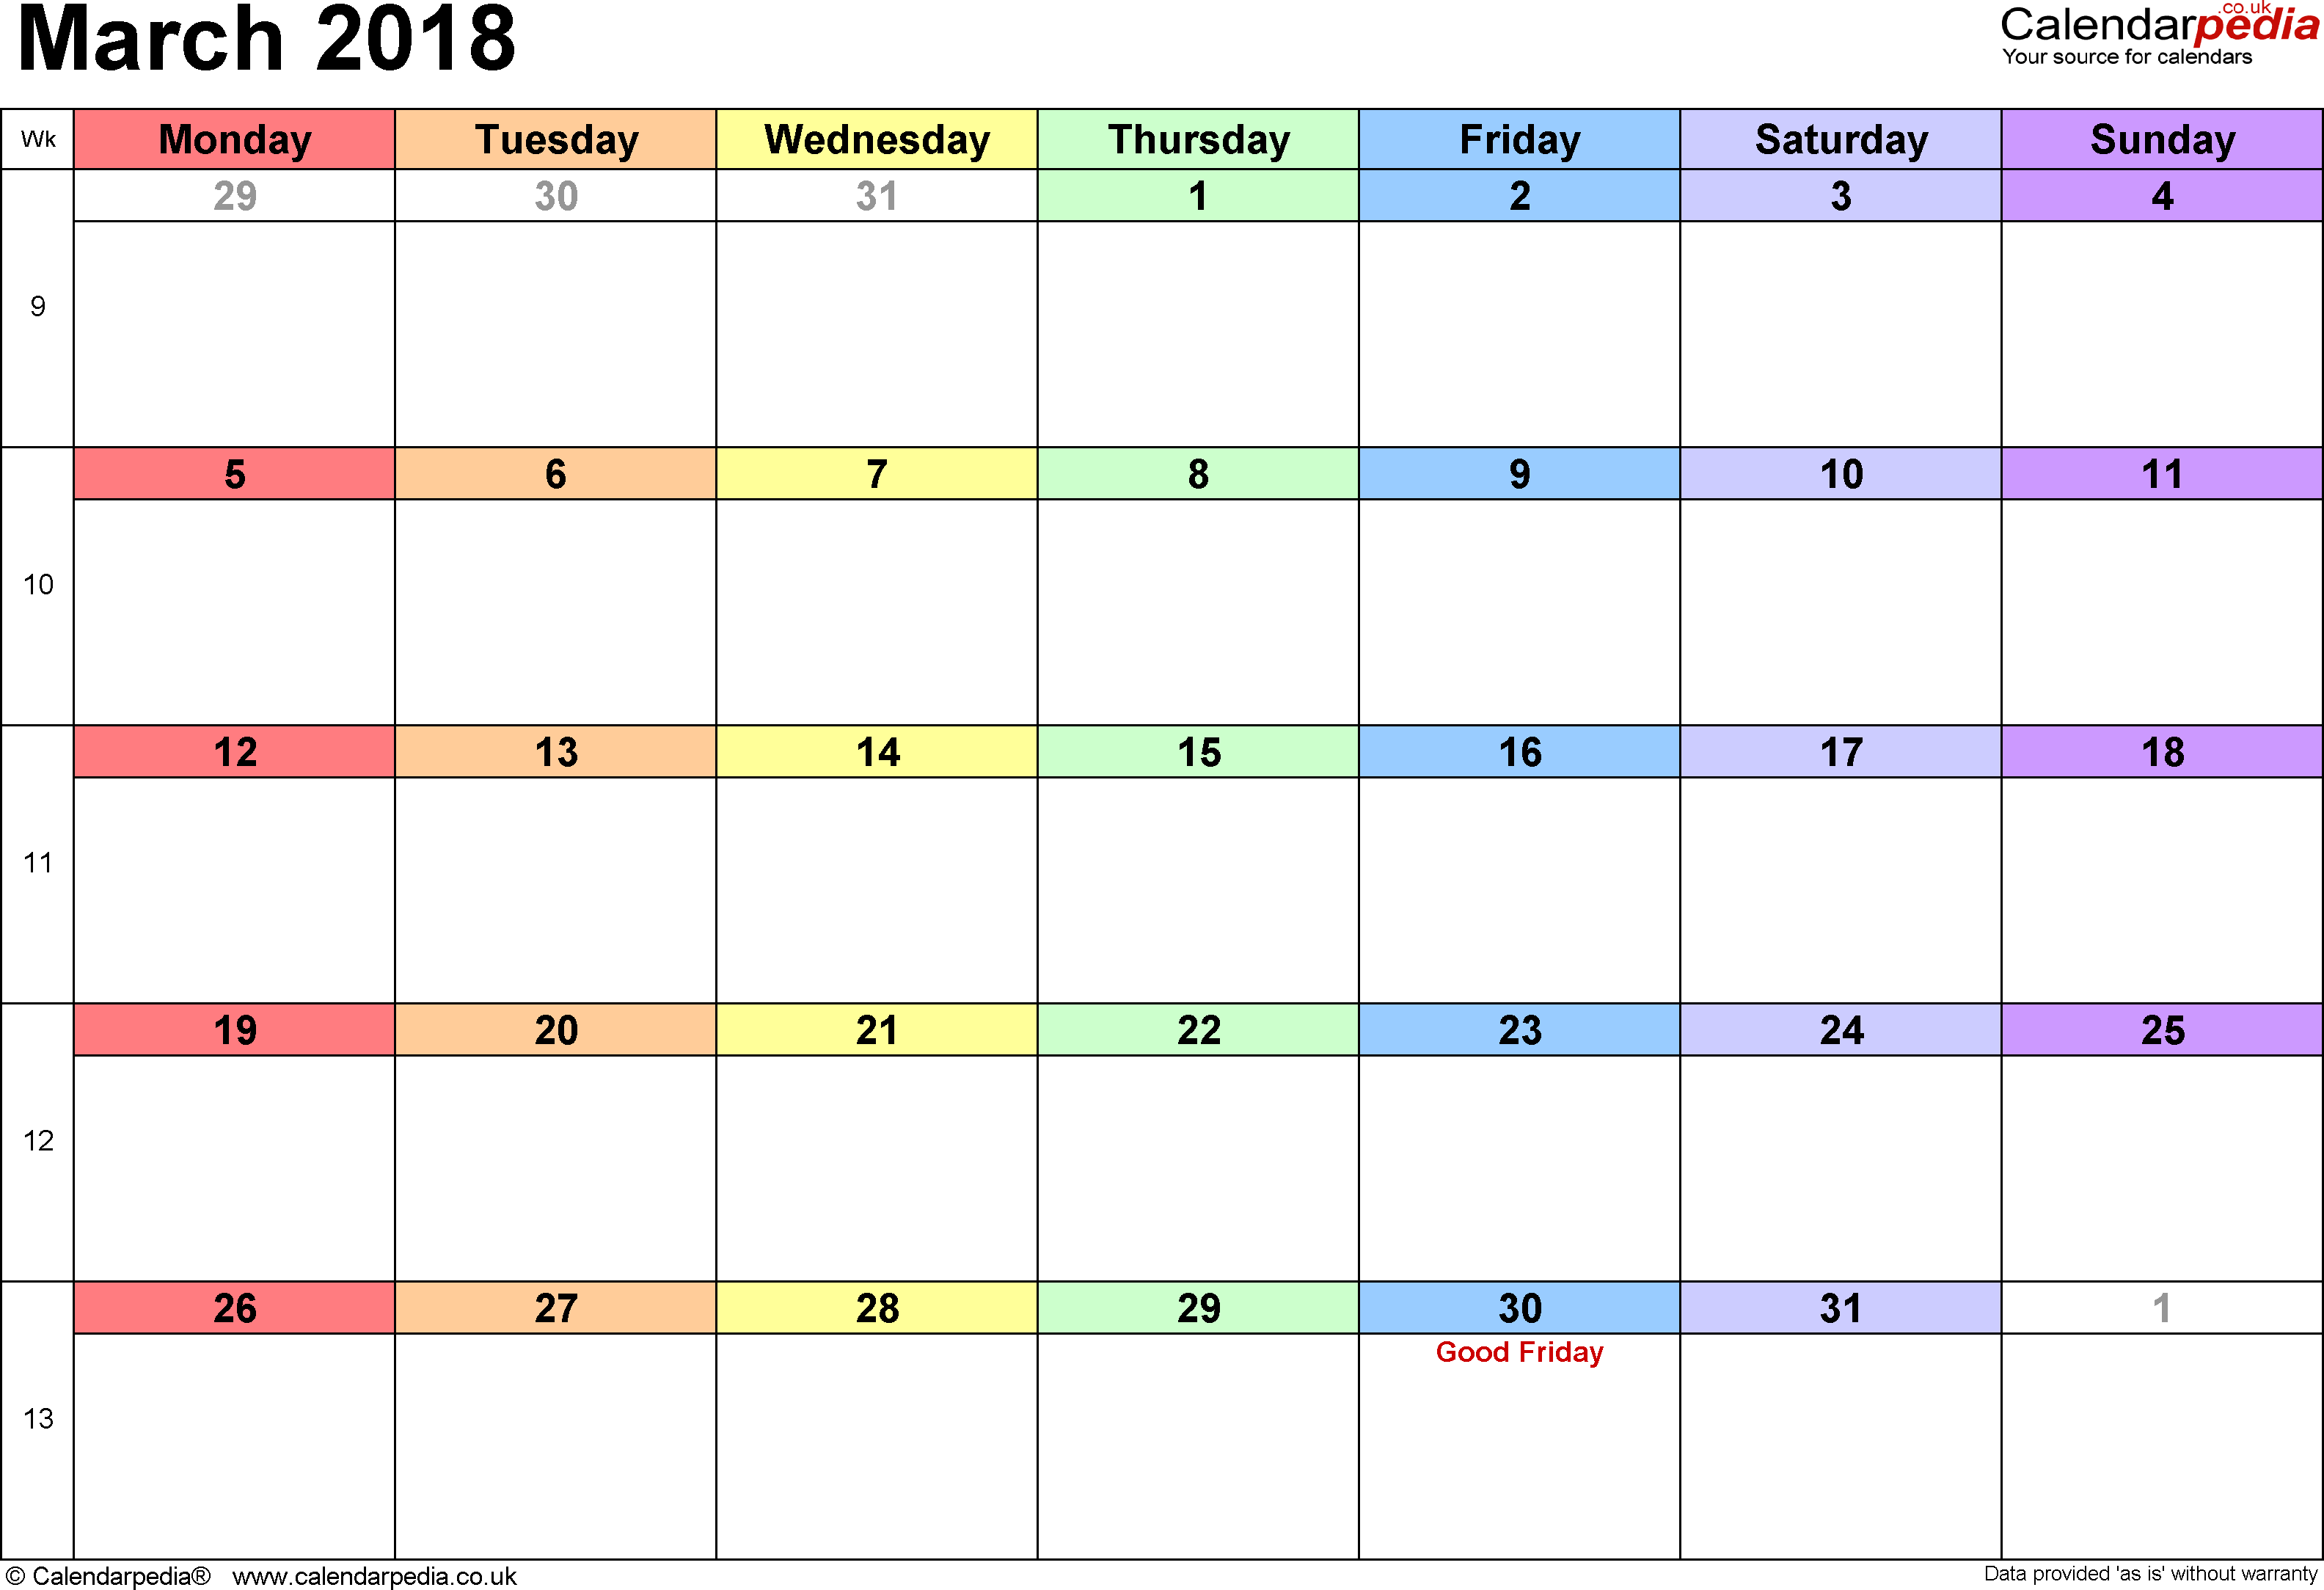 Calendar March 2018, landscape orientation, 1 page, with UK bank holidays and week numbers